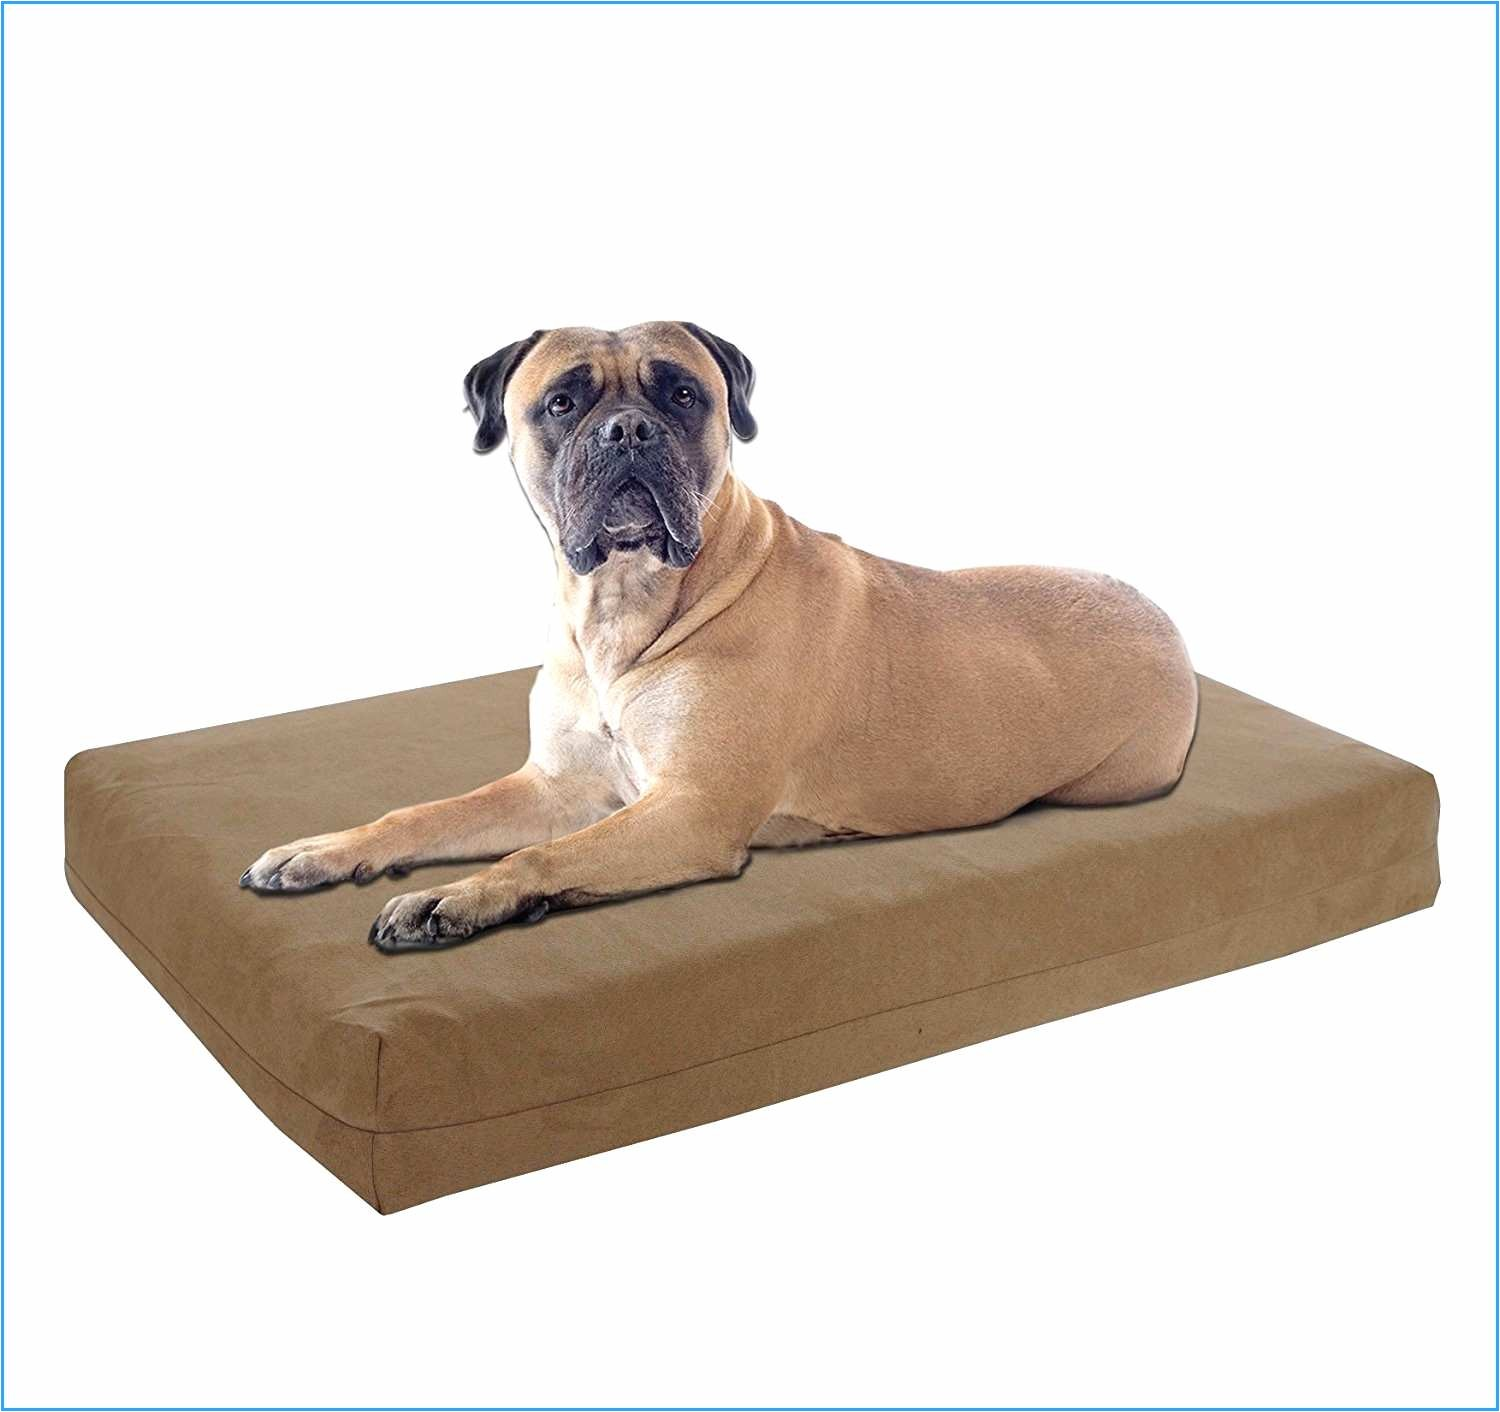 admirably pictures of barksbar orthopedic dog bed